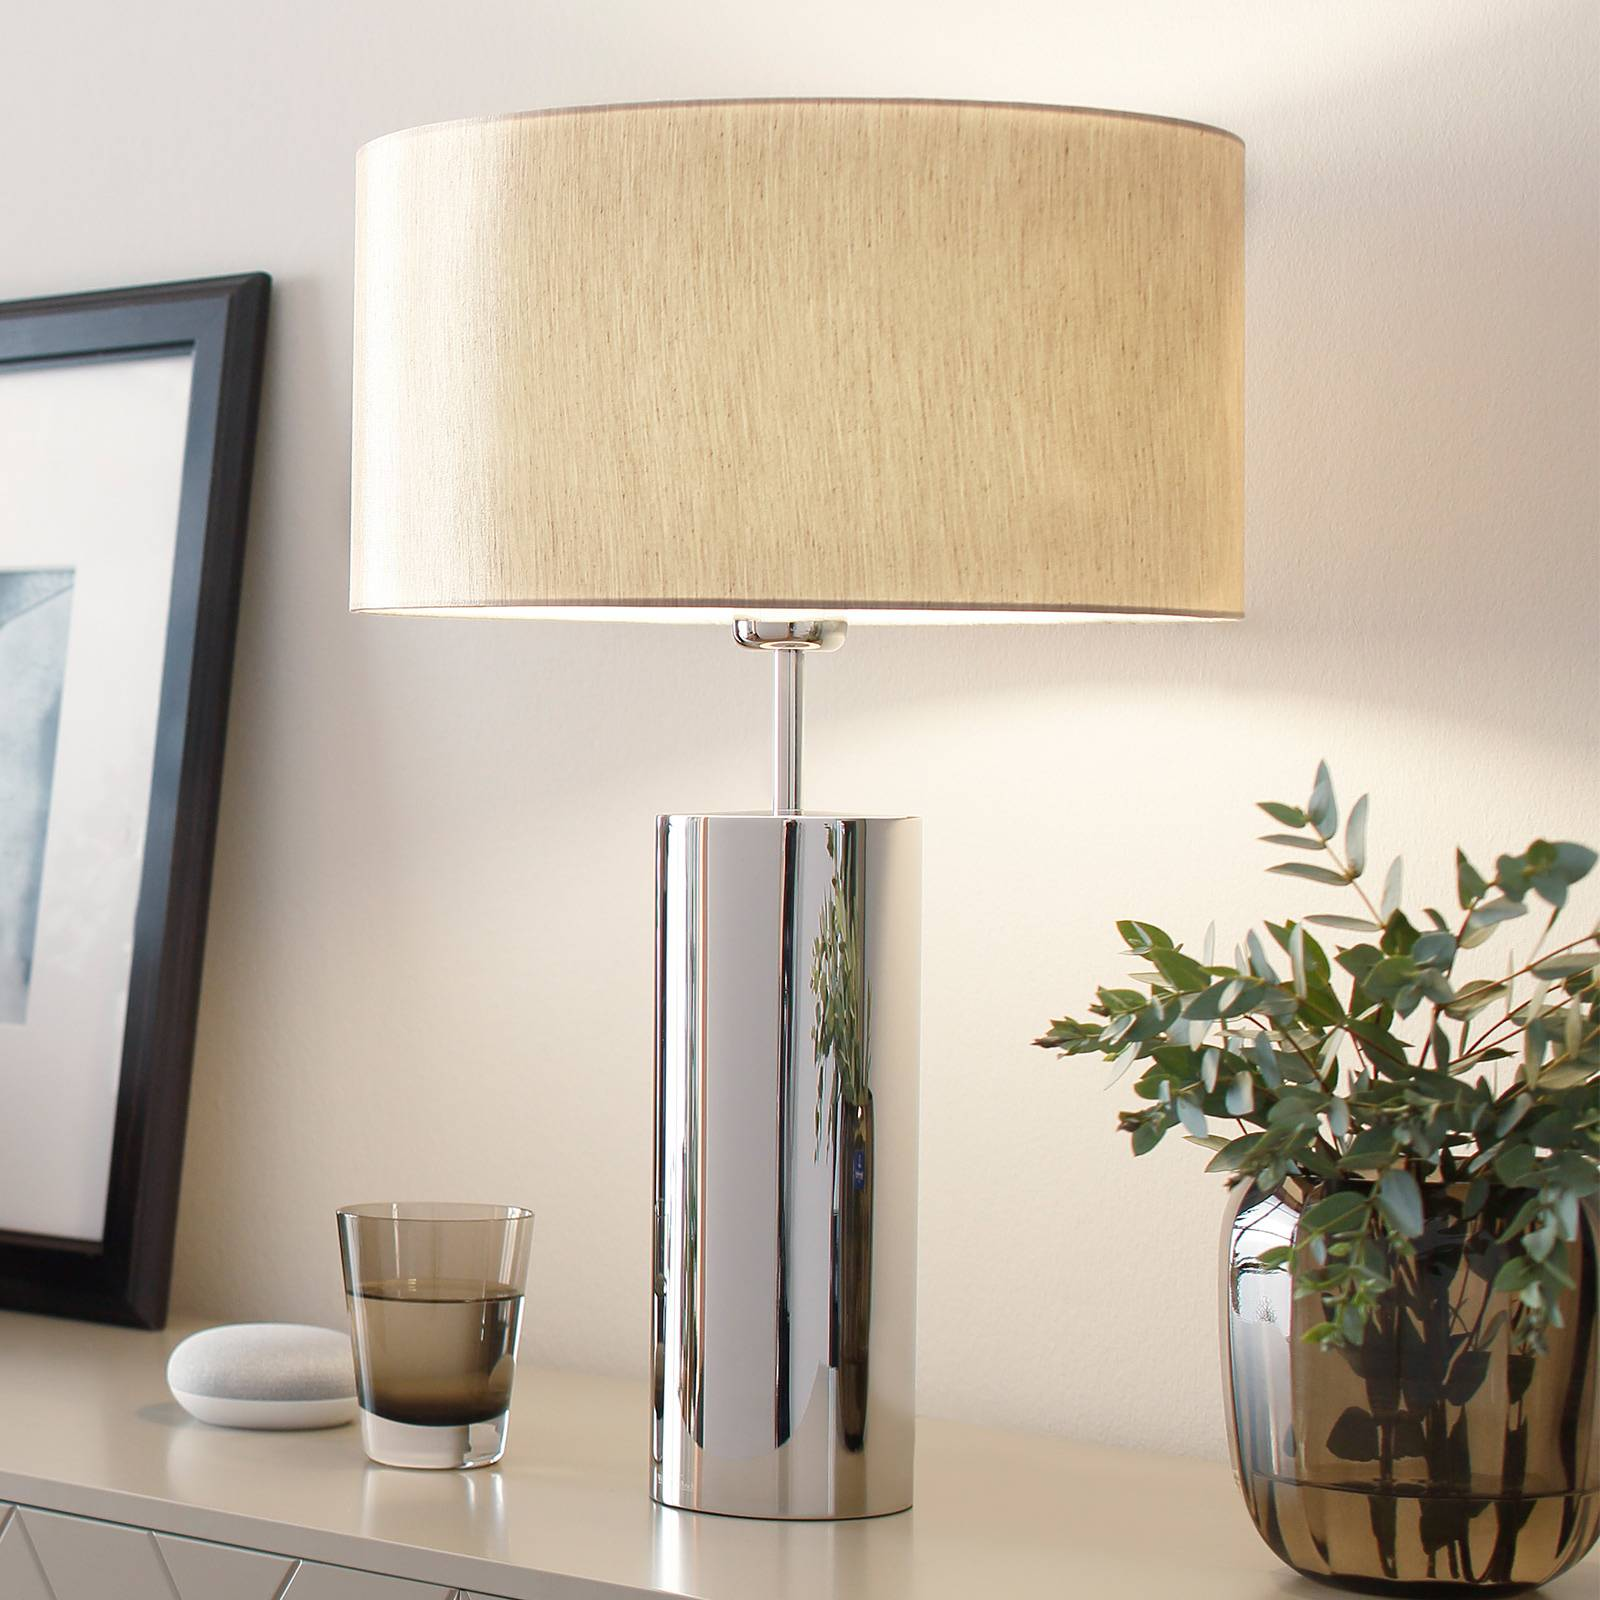 Puristic table lamp Prague, round from Villeroy & Boch